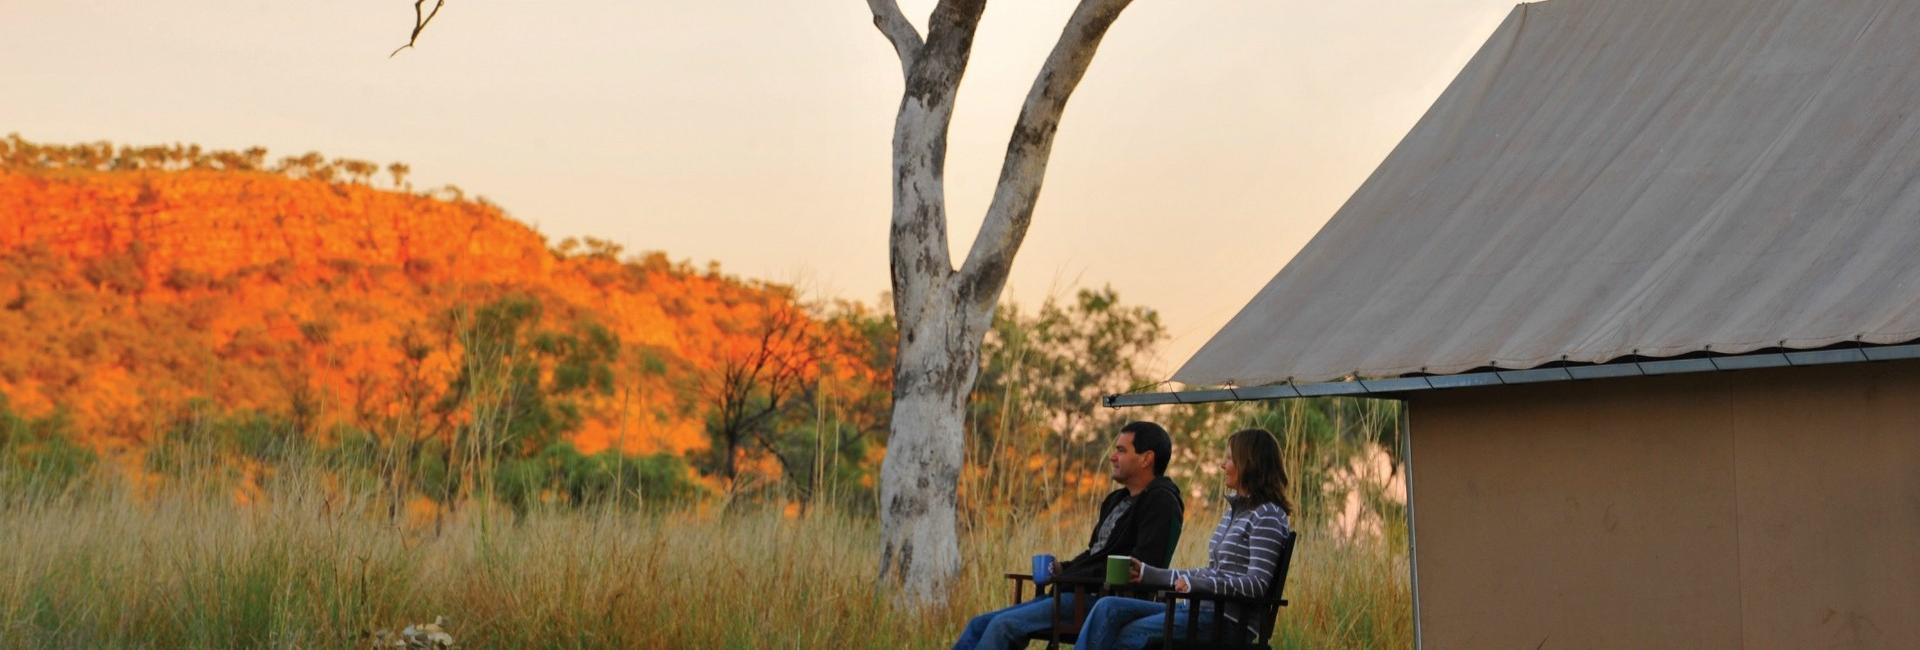 Tented cabin at APT Bell Gorge Wilderness Lodge on the GIbb River Road in the Kimberley region of Western Australia